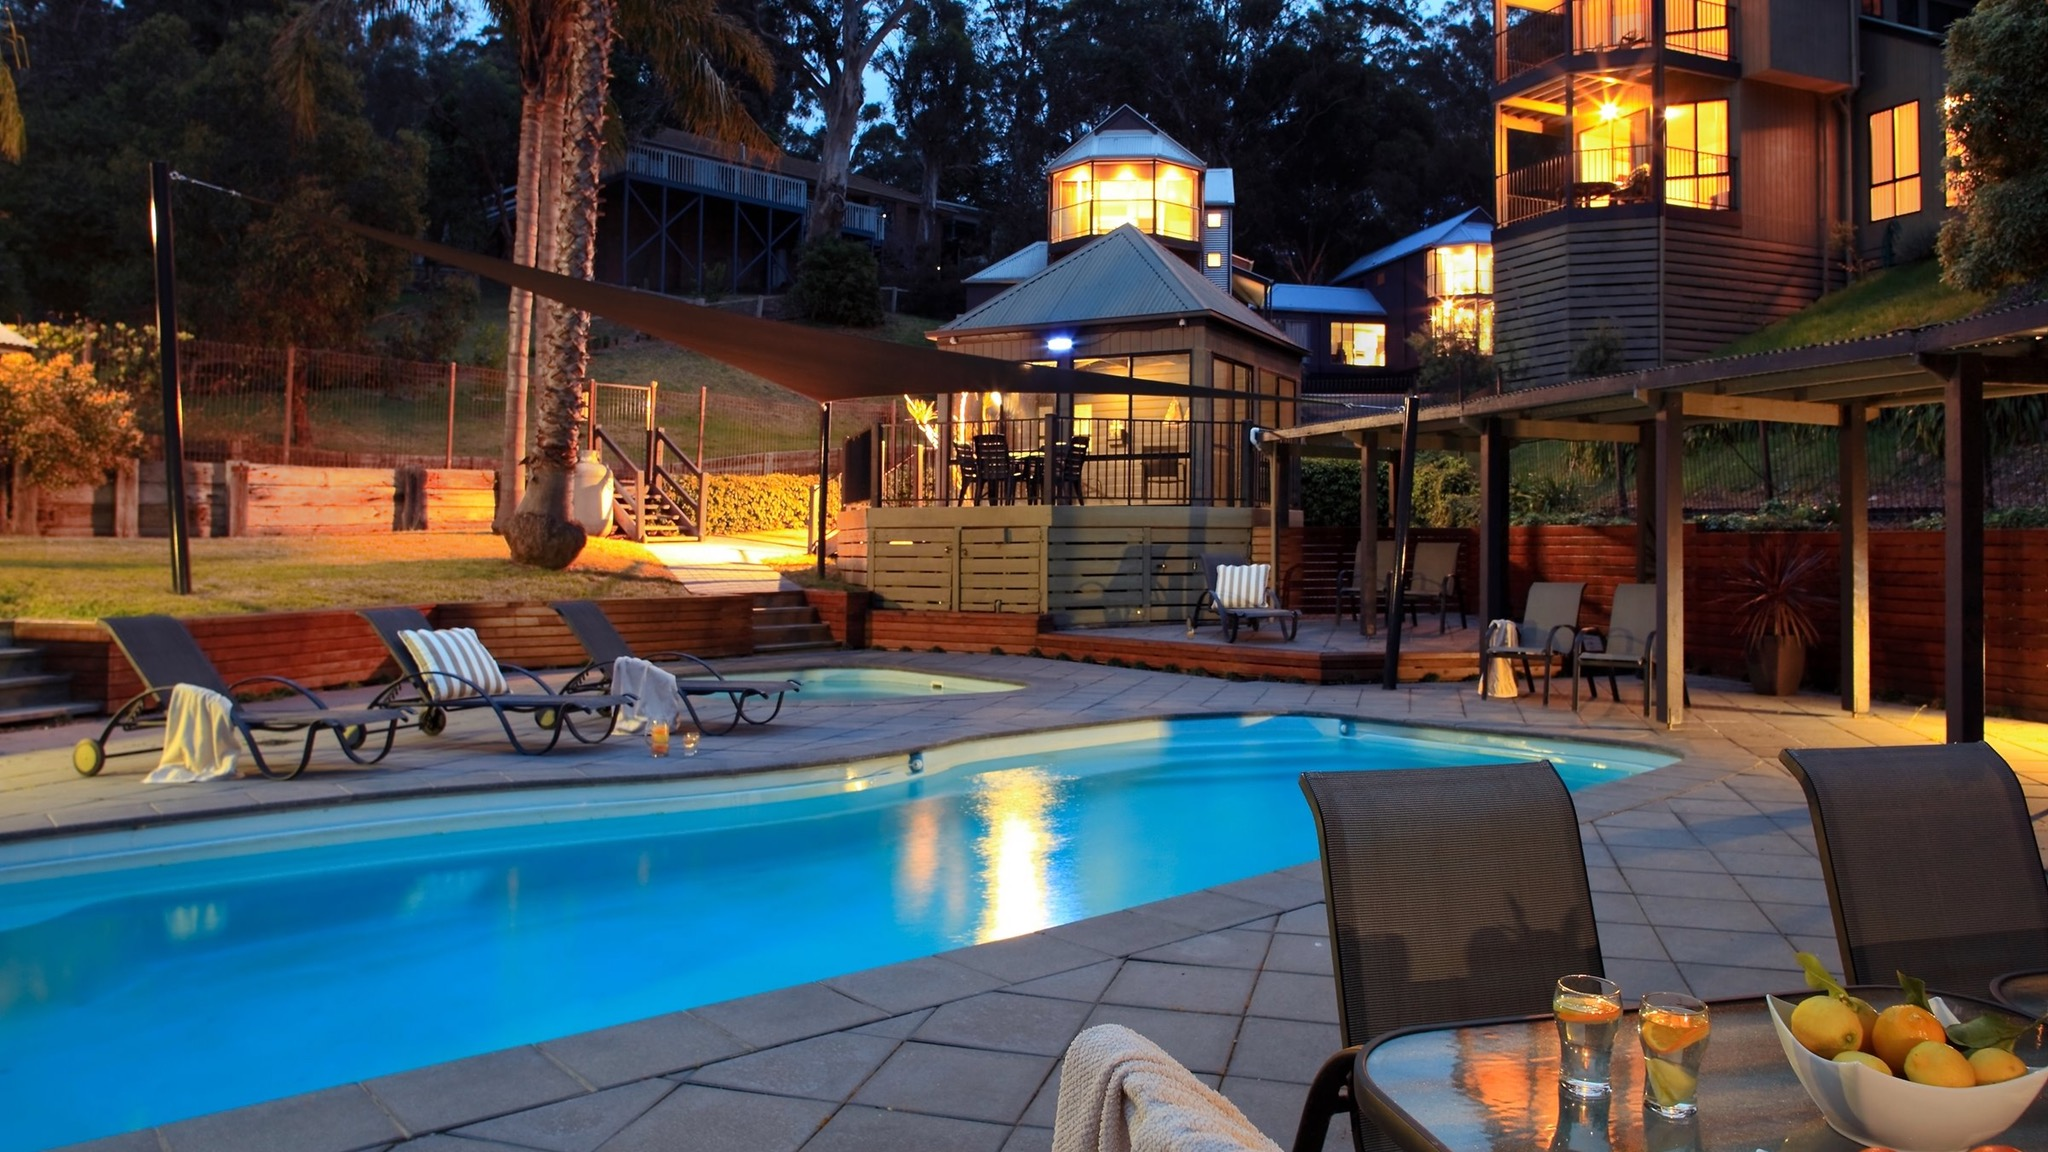 Edgewater Terraces at Metung, Accommodation, Gippsland, Victoria